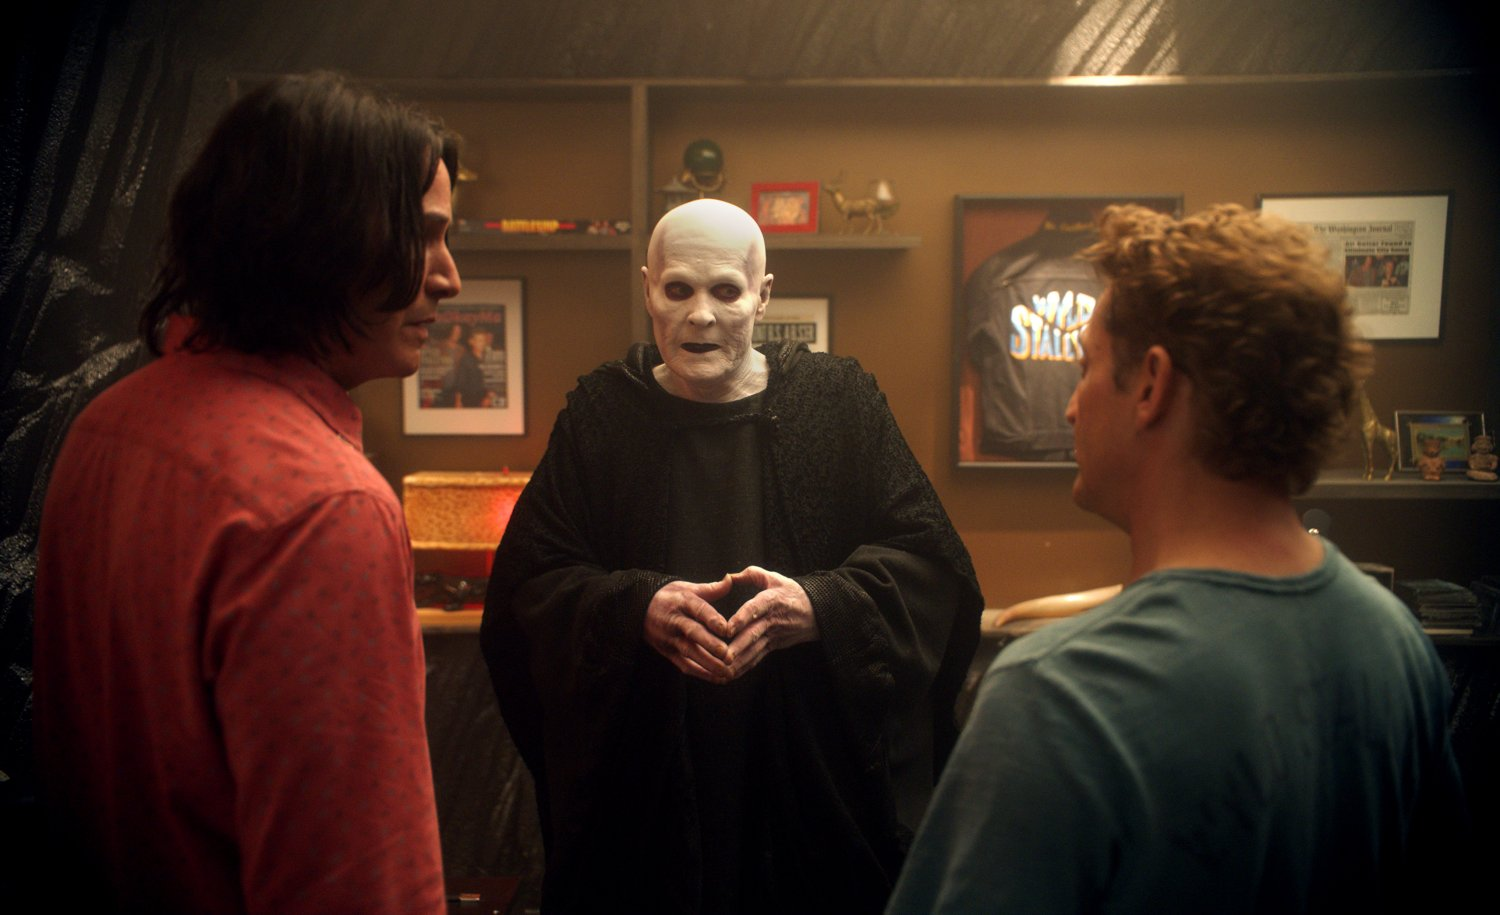 rev-1-Death_Bill_Ted_81D-3A_GRADED_112119.00195142_High_Res_JPEG